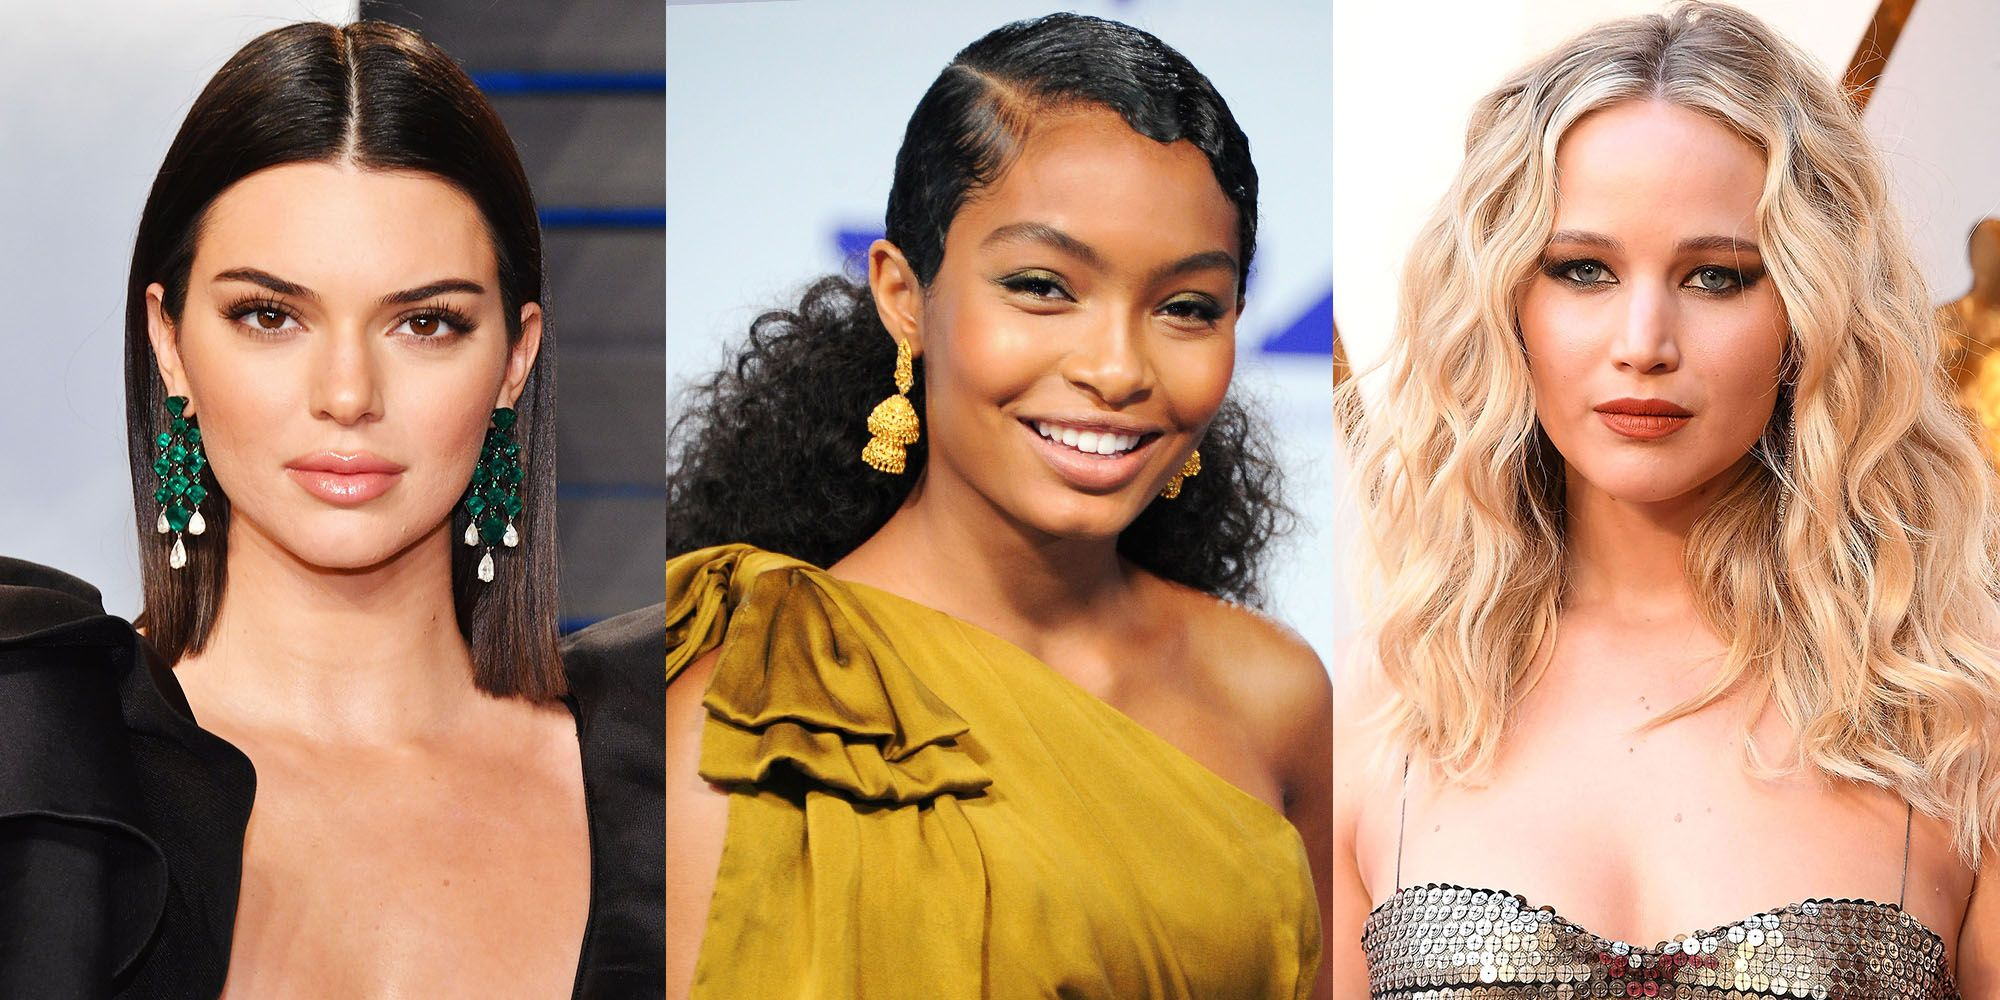 Summer hairstyles 2016: TOP 5 fashion tips